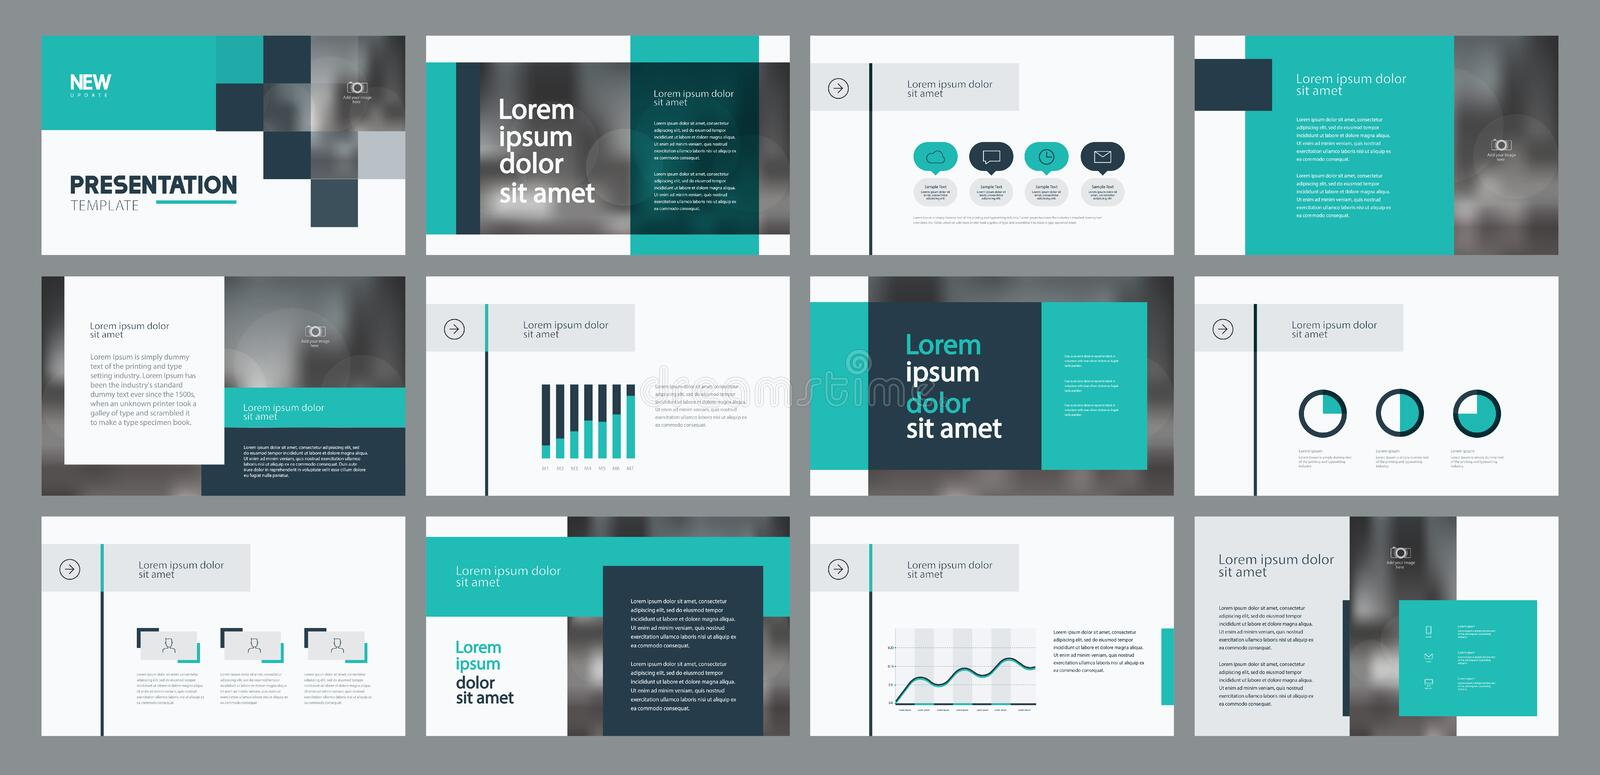 Business presentation template design and page layout design for brochure ,annual report and company profile. With info graphic elements stock illustration